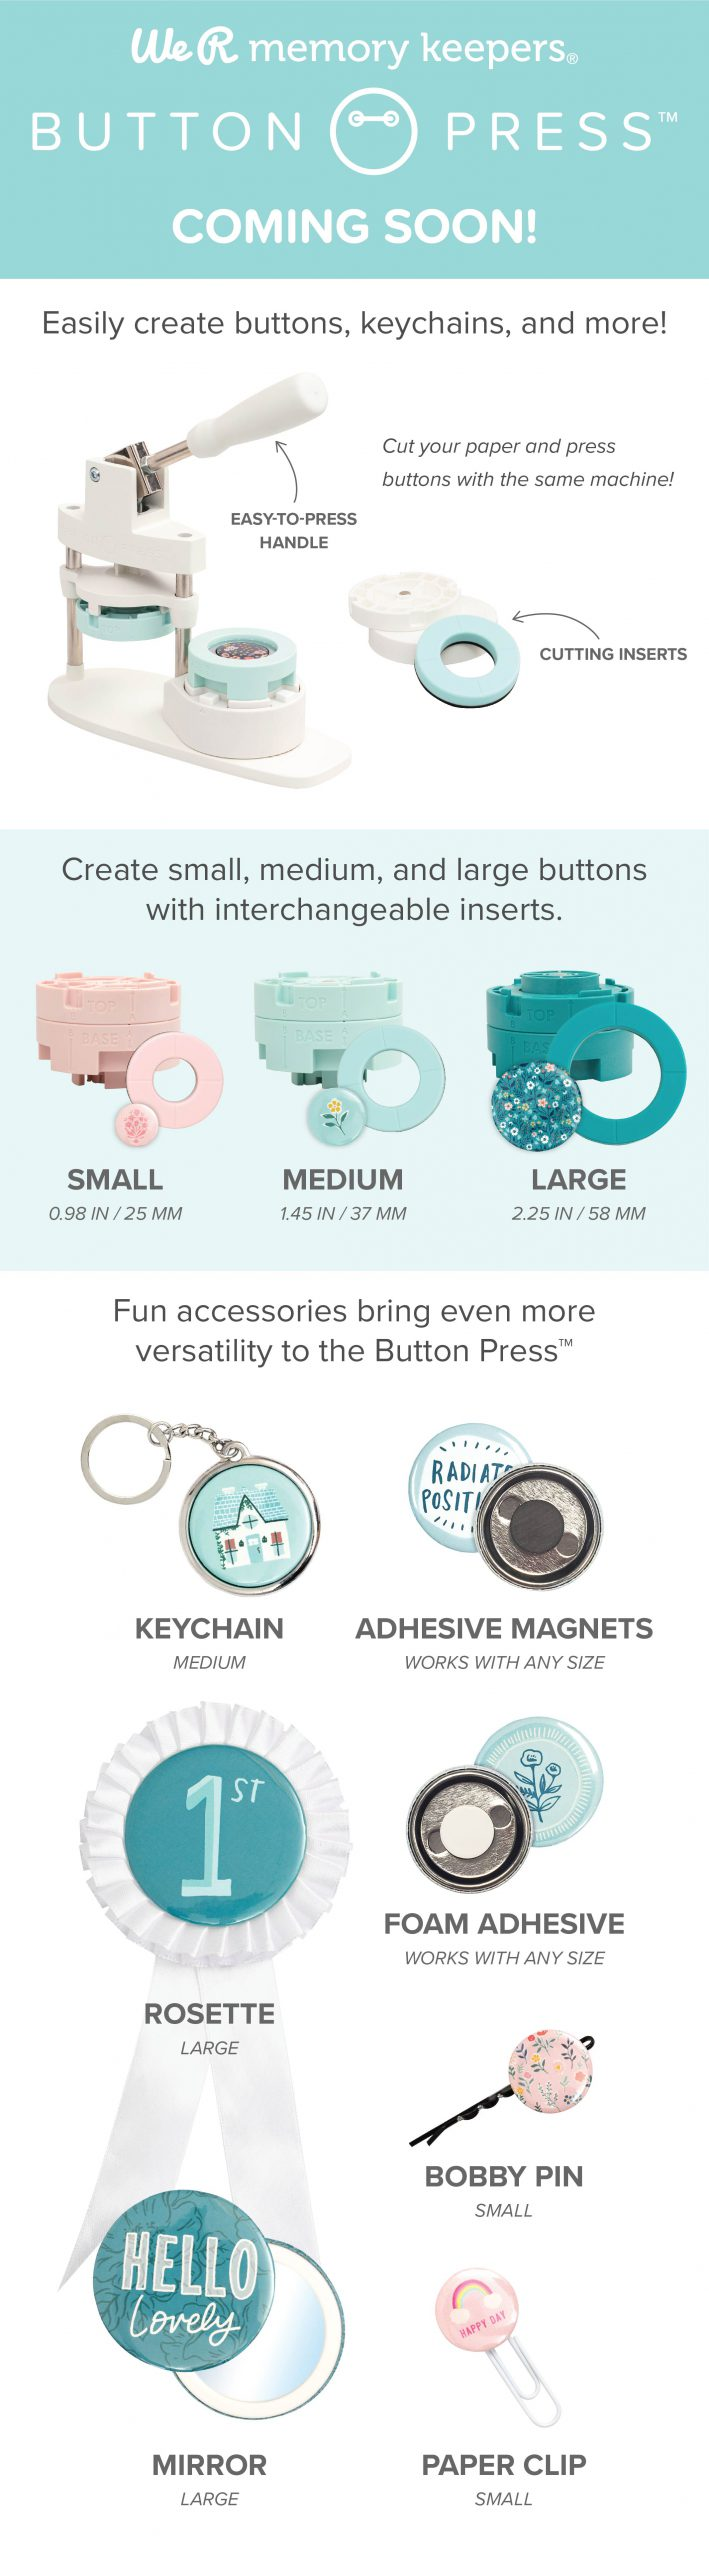 Button Press from We R Memory Keepers is coming to retailers in the summer of 2020!